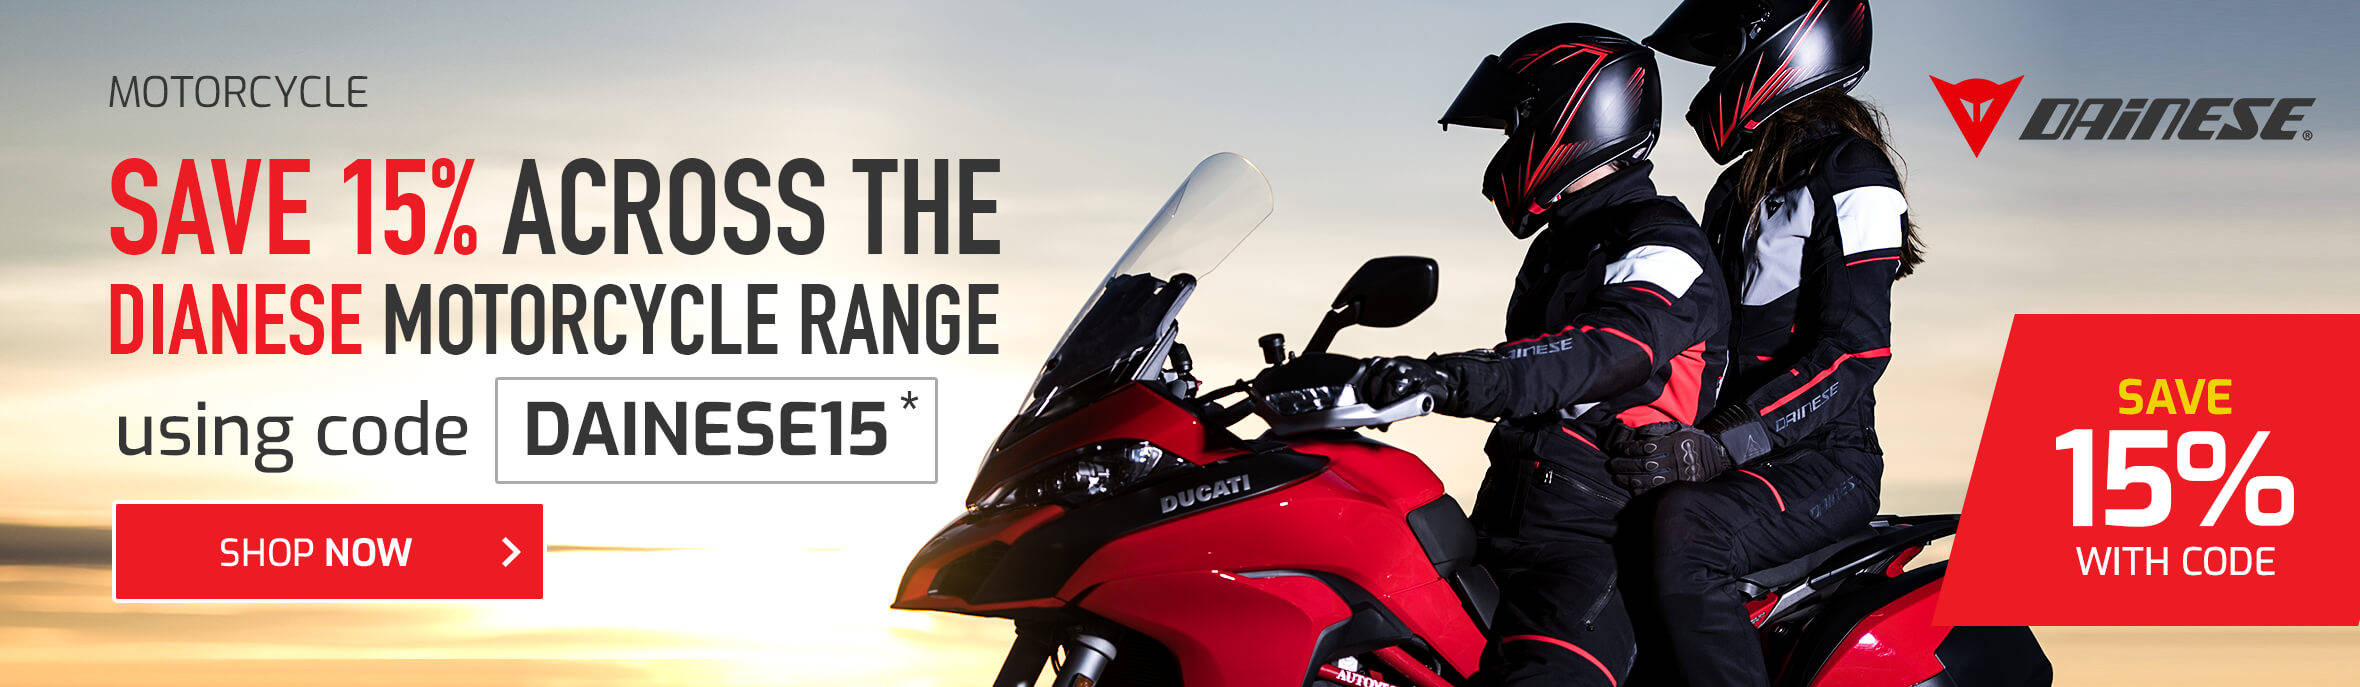 Save 15% on the Dainese Motorcycle Range - DAINESE15